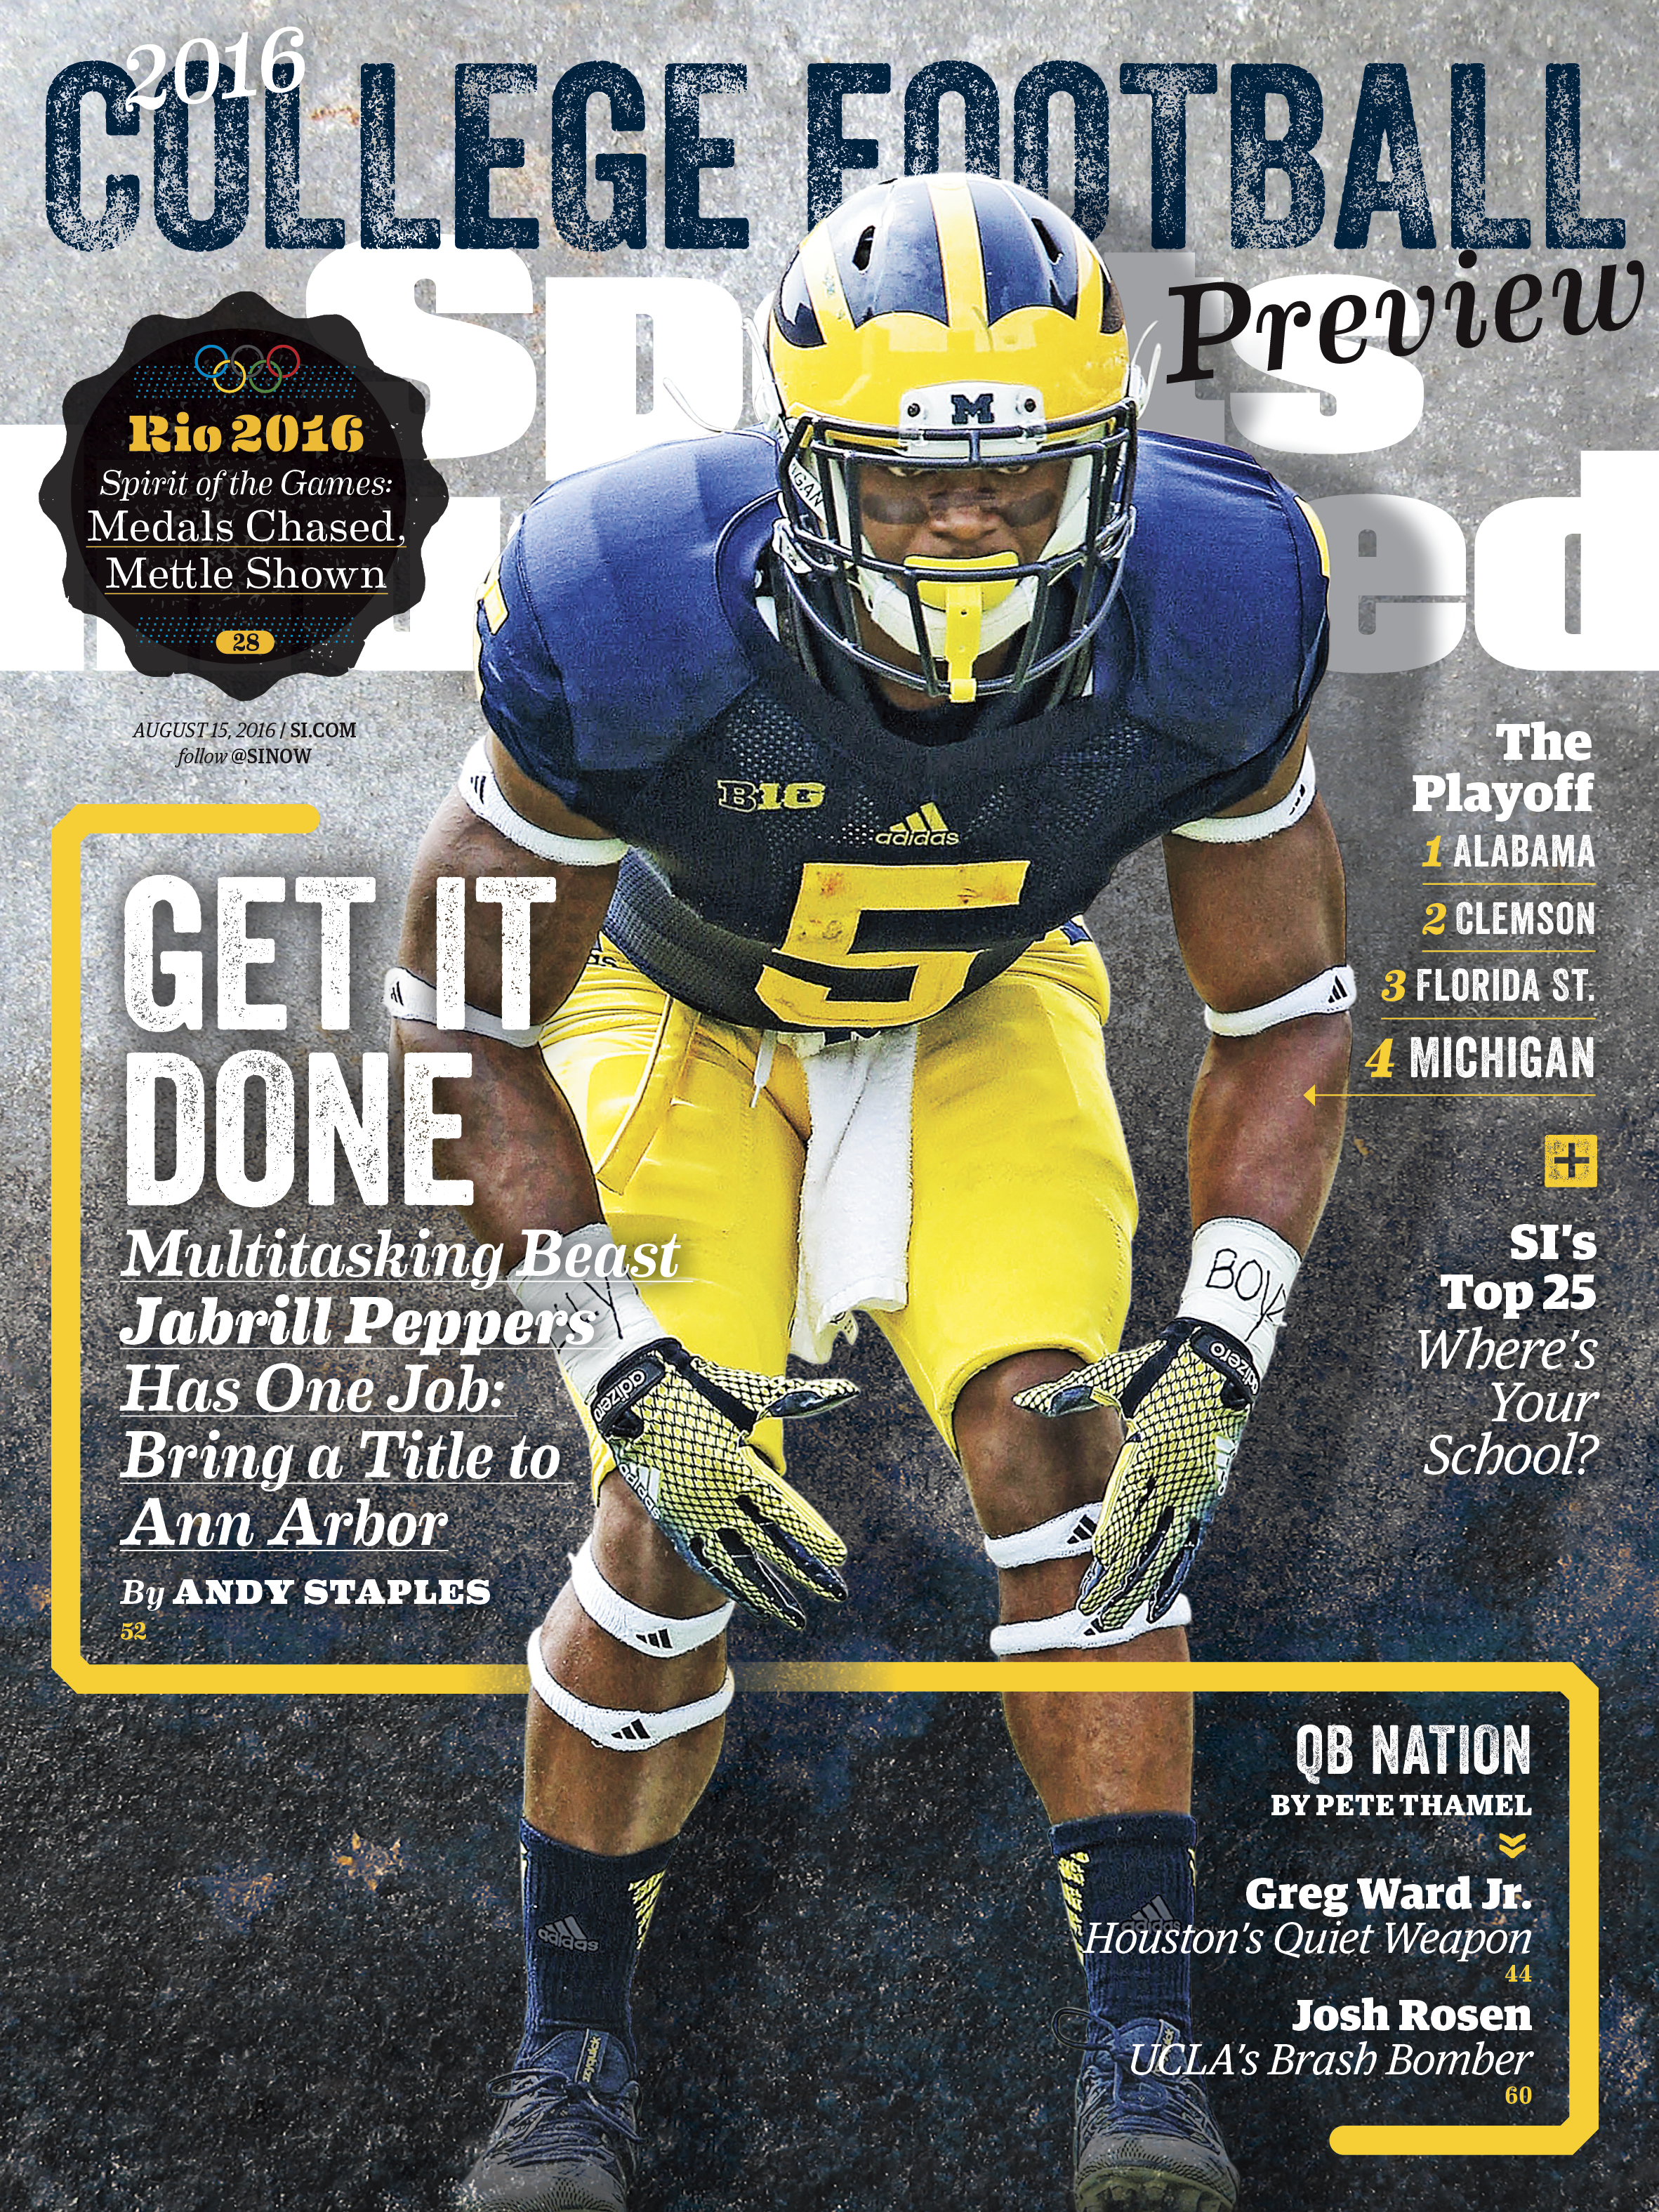 official college football si college football